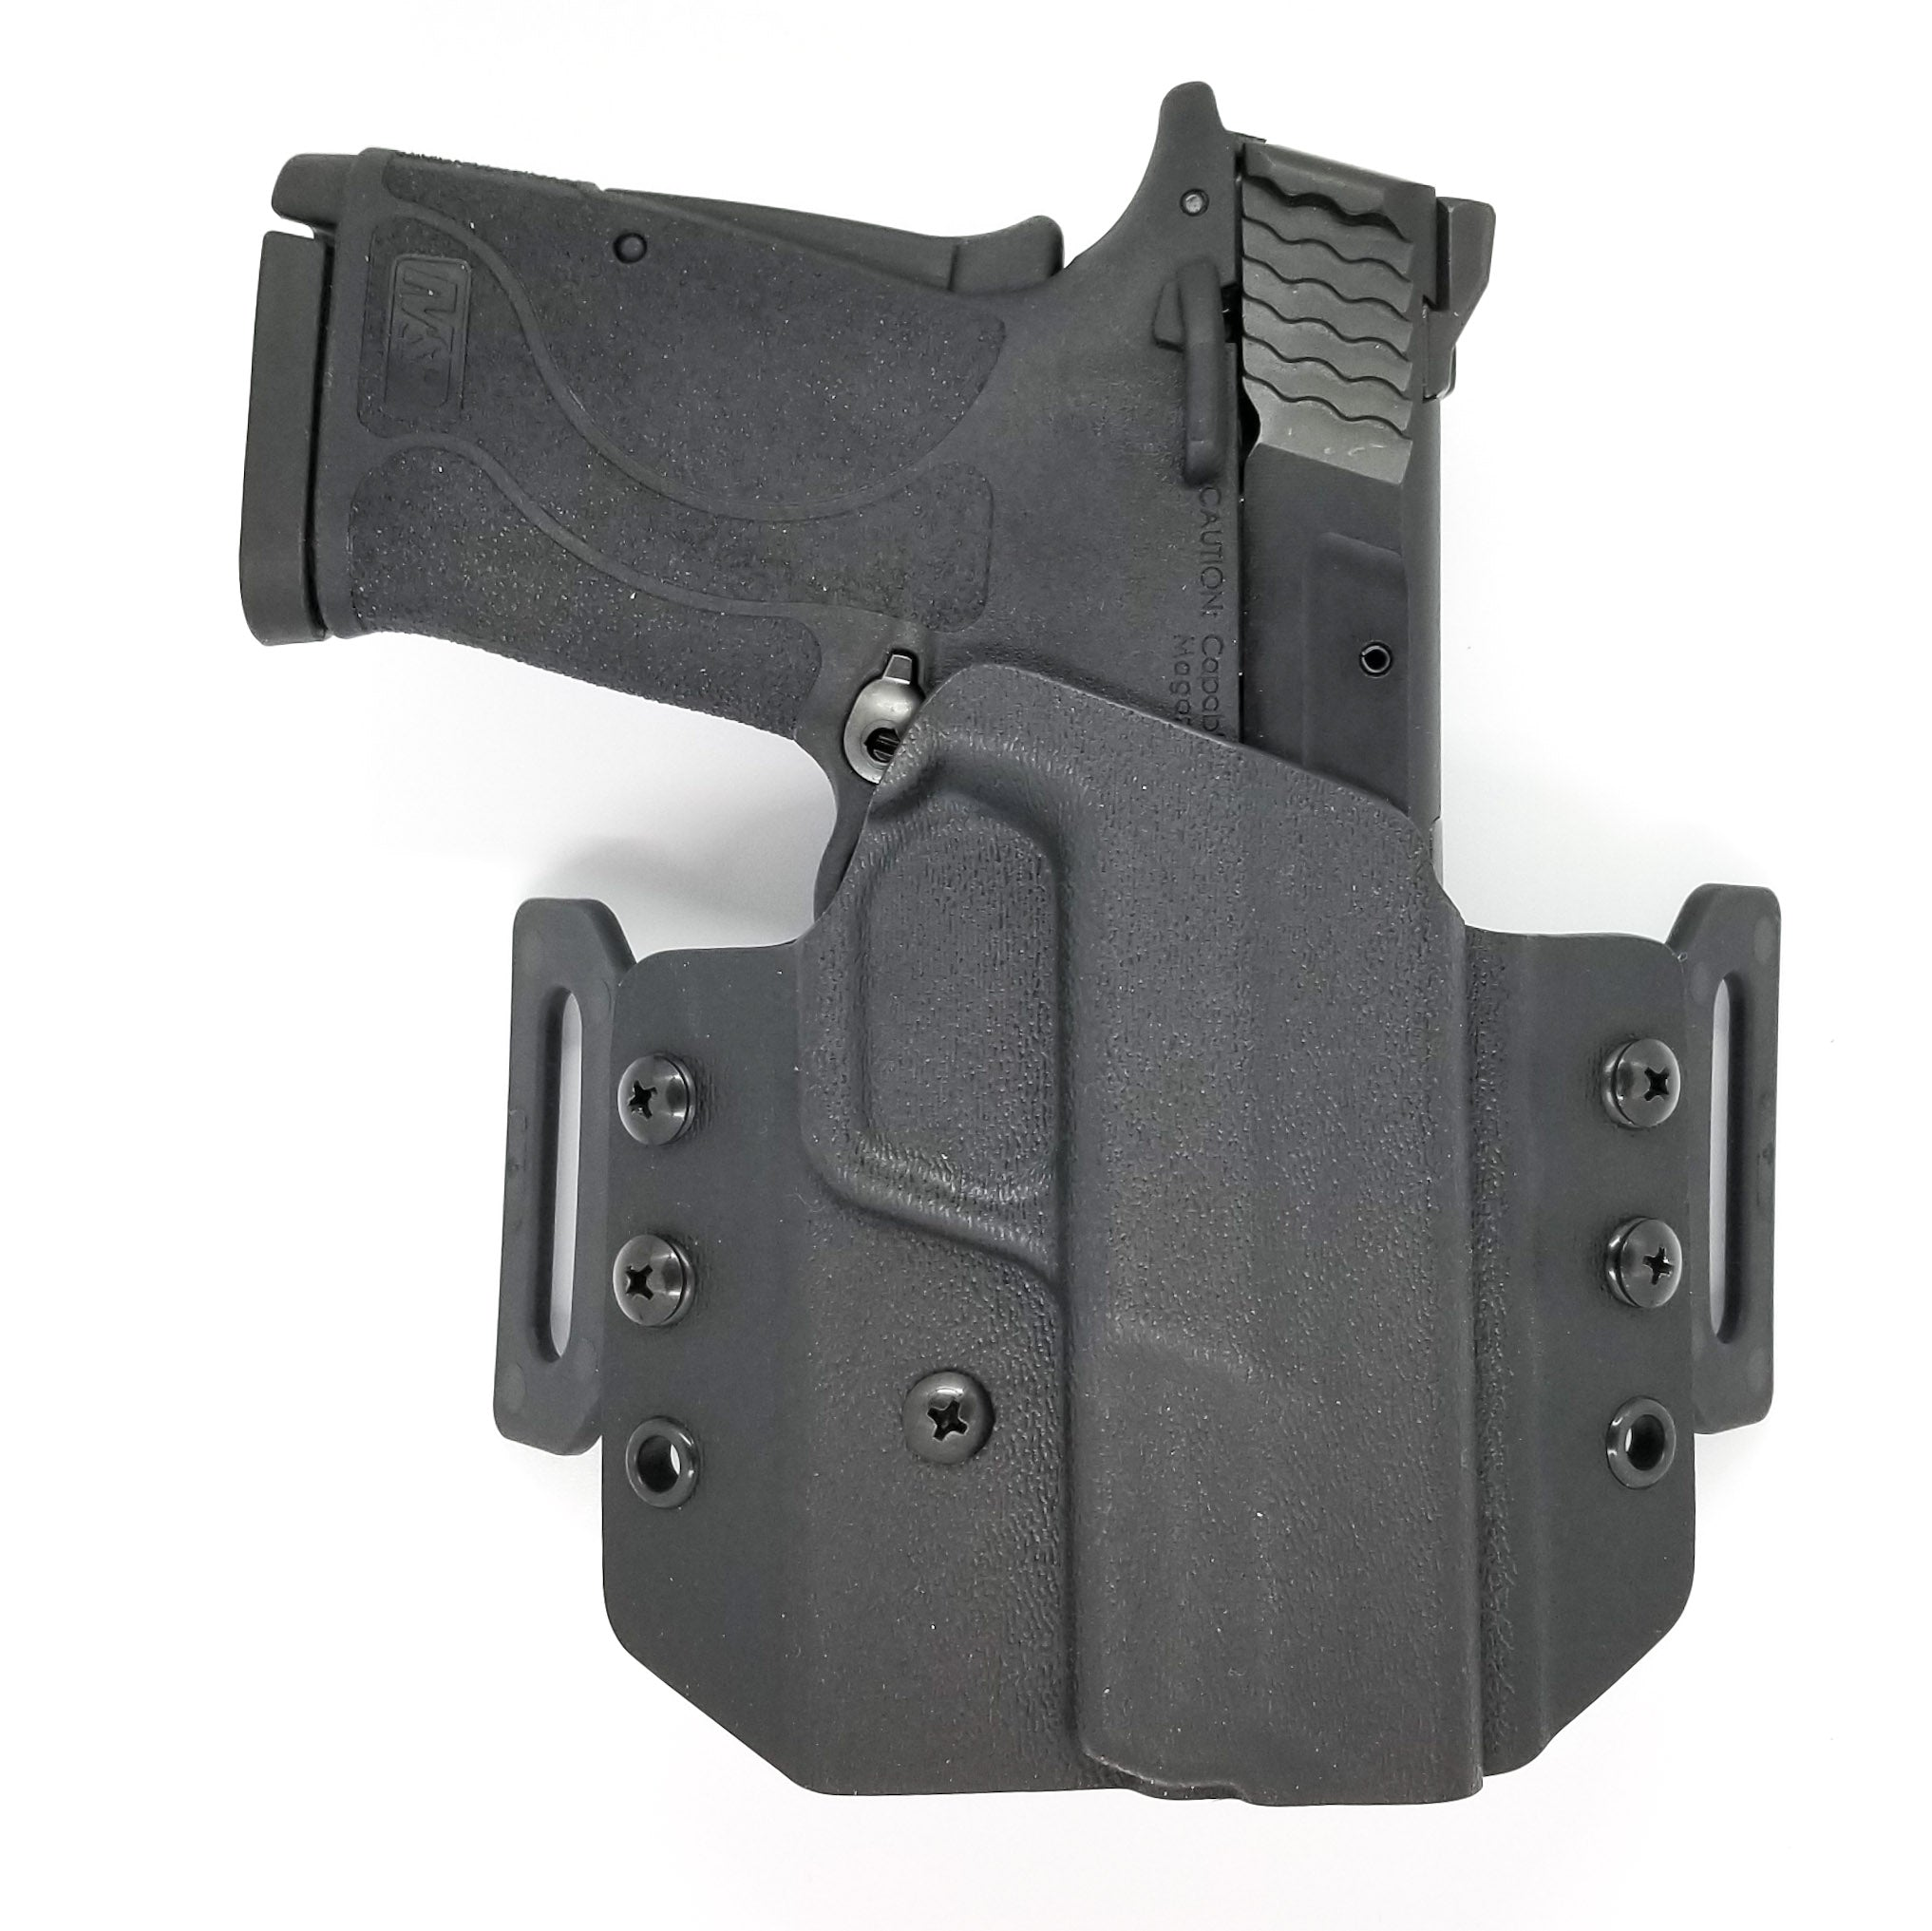 Smith & Wesson M&P 9 Shield EZ Pancake Style